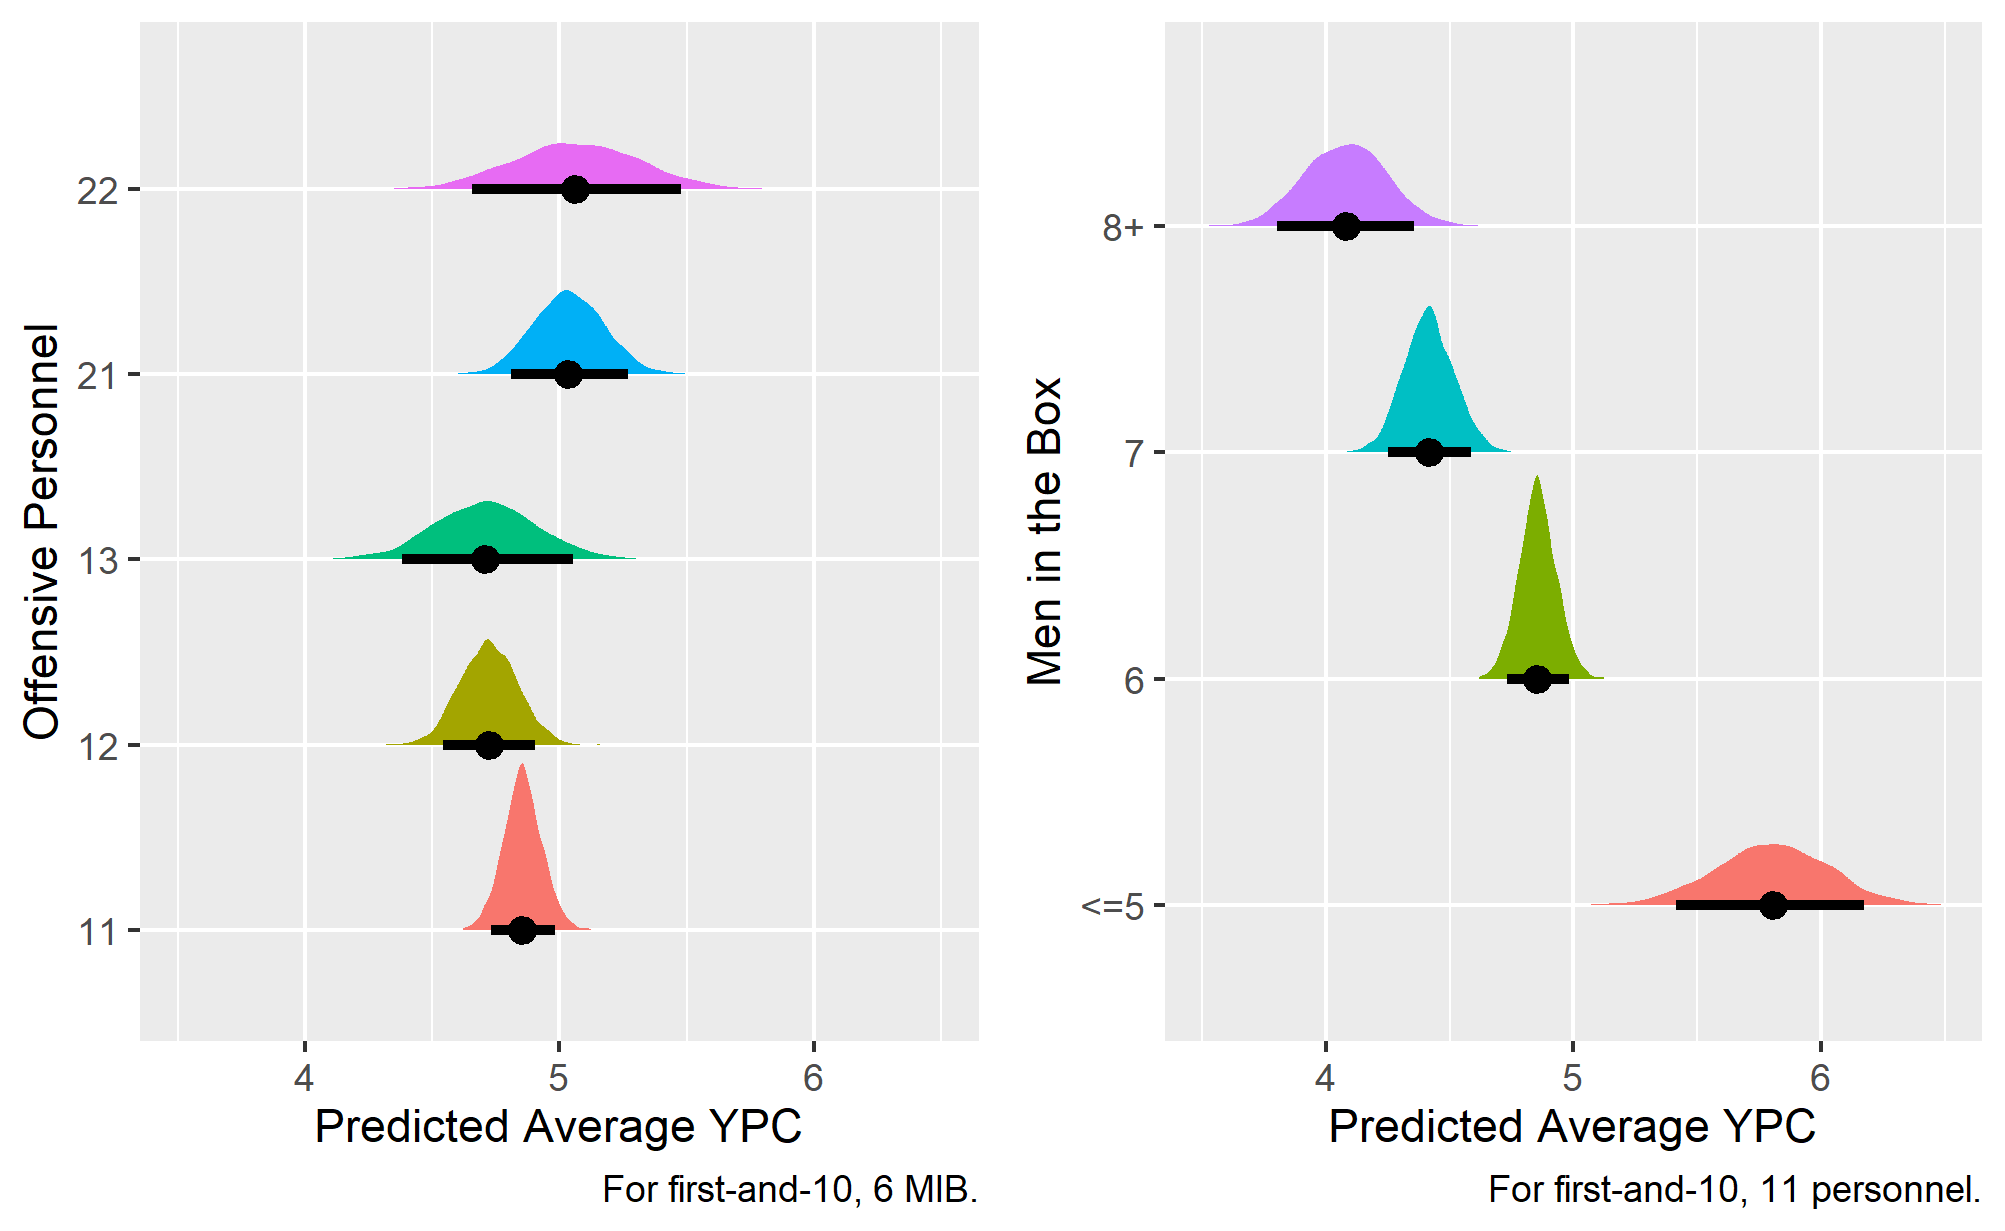 Predicted average YPC by offensive personnel and MIB.